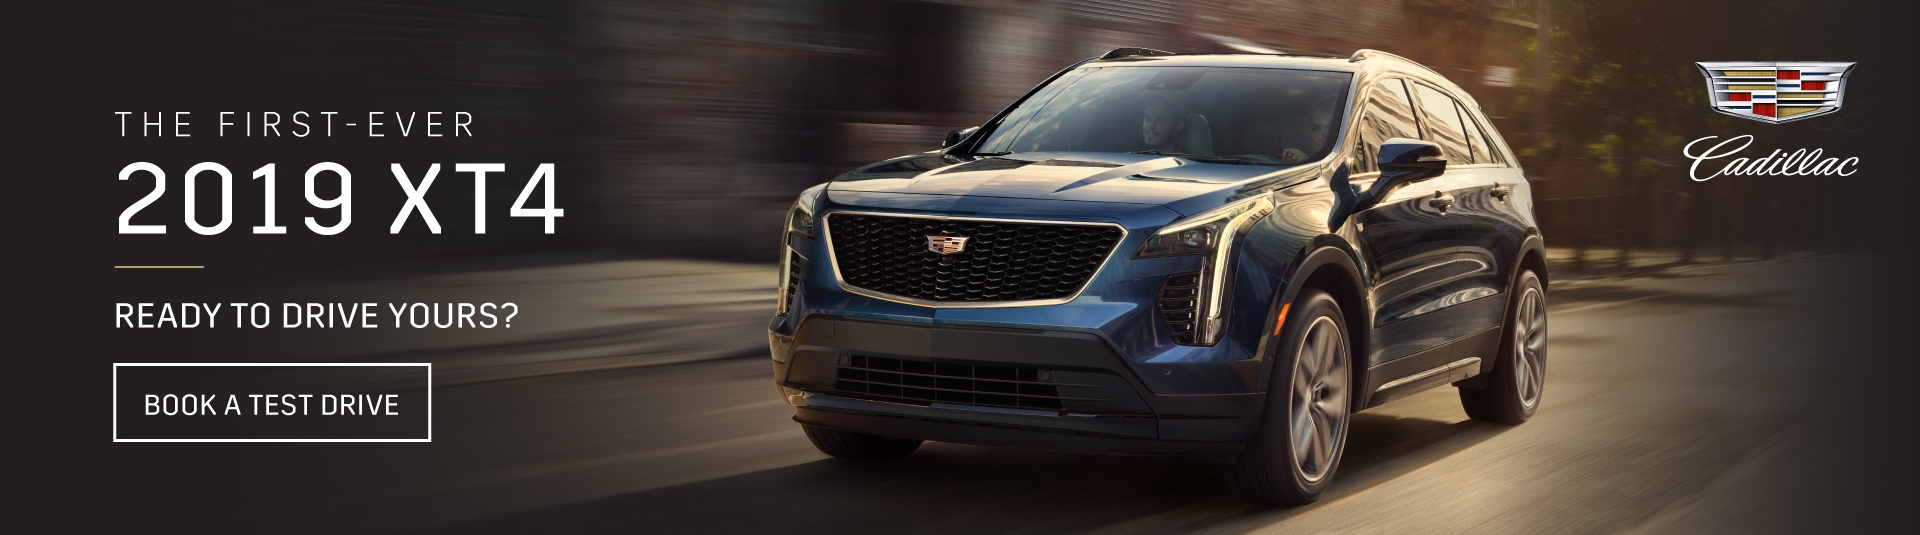 New Cadillac XT4 for sale in Toronto